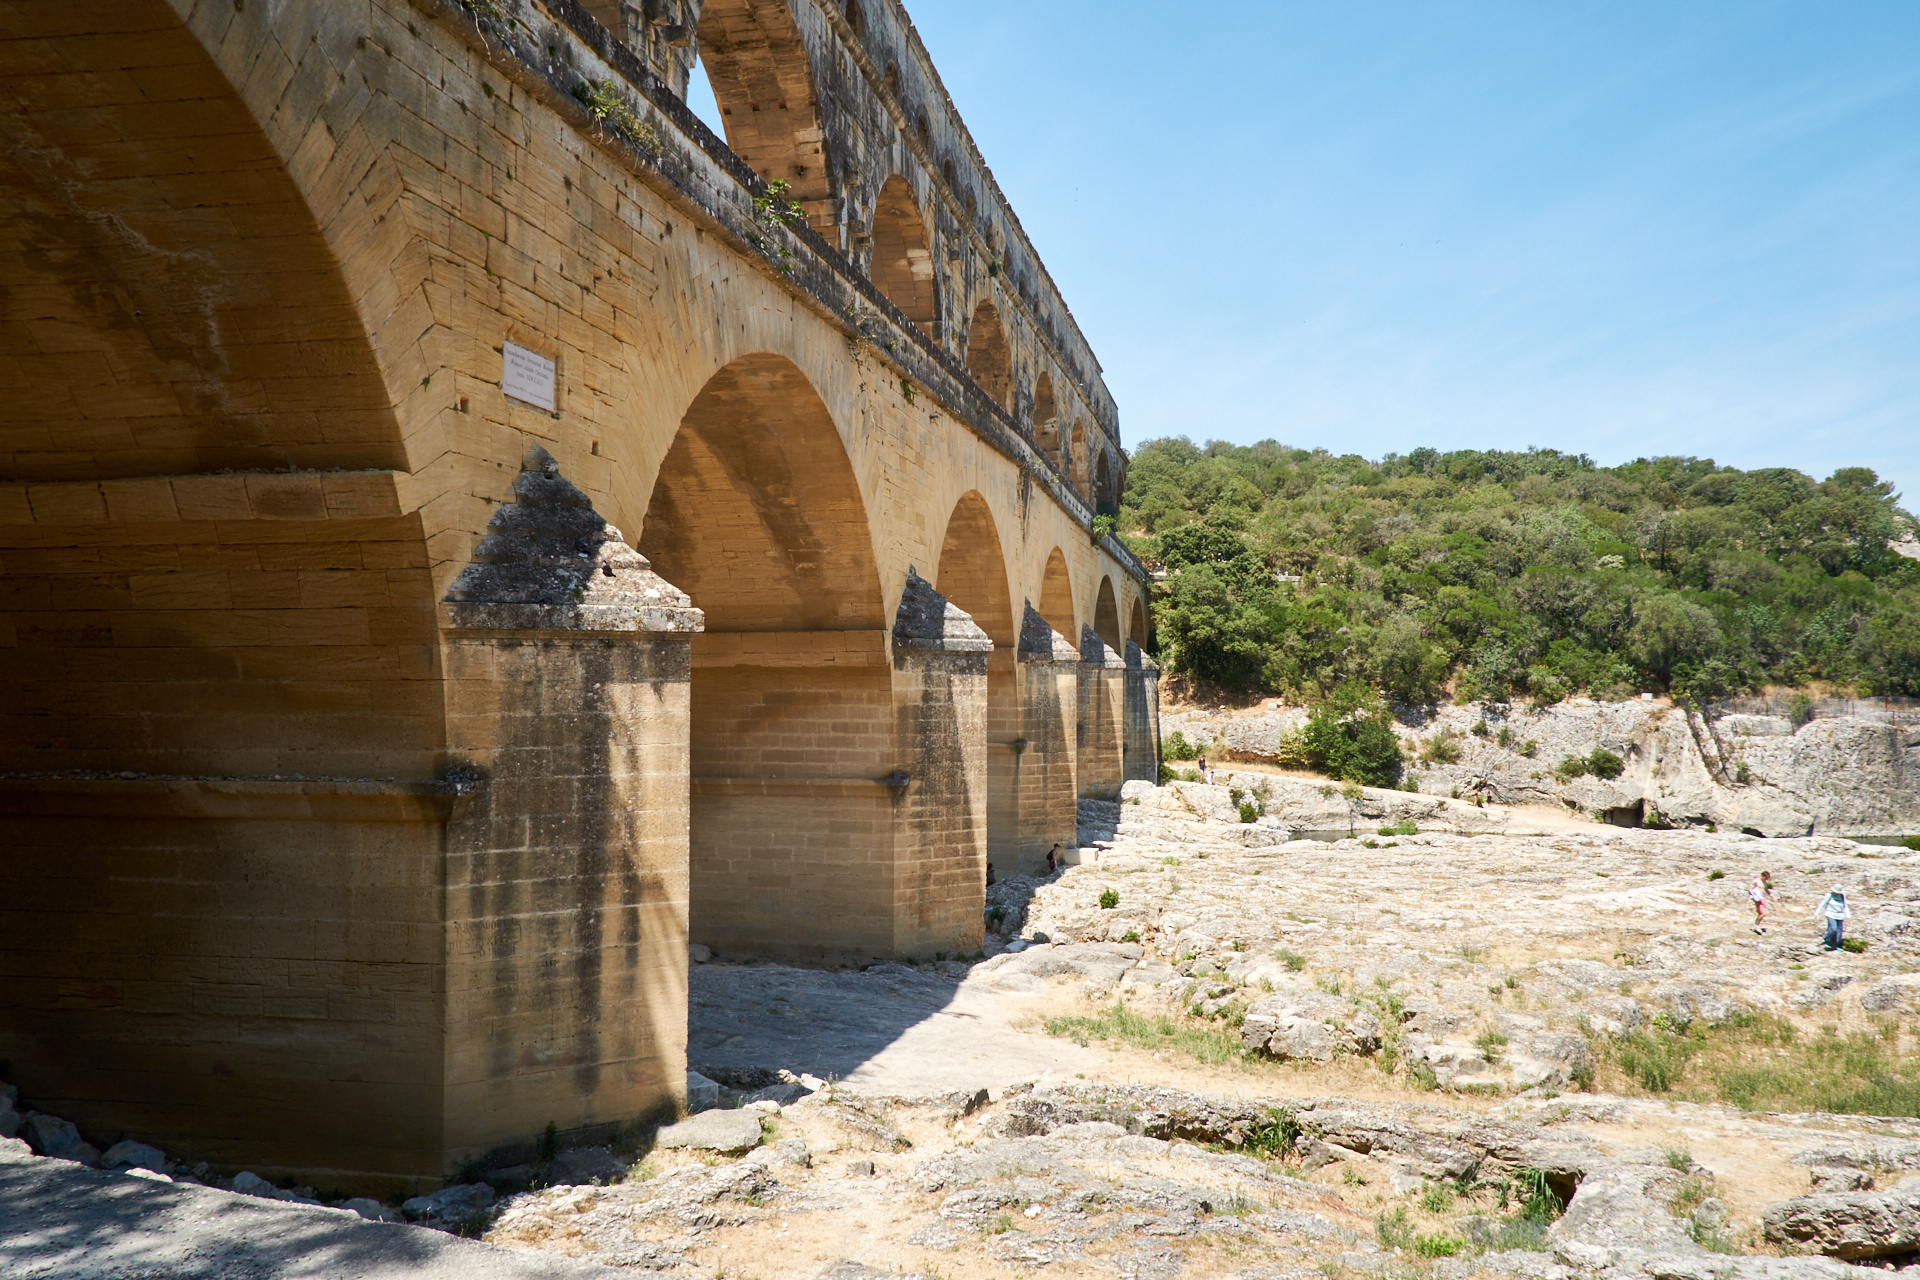 Photos of Pont du Gard. Avignon, France. July 2019